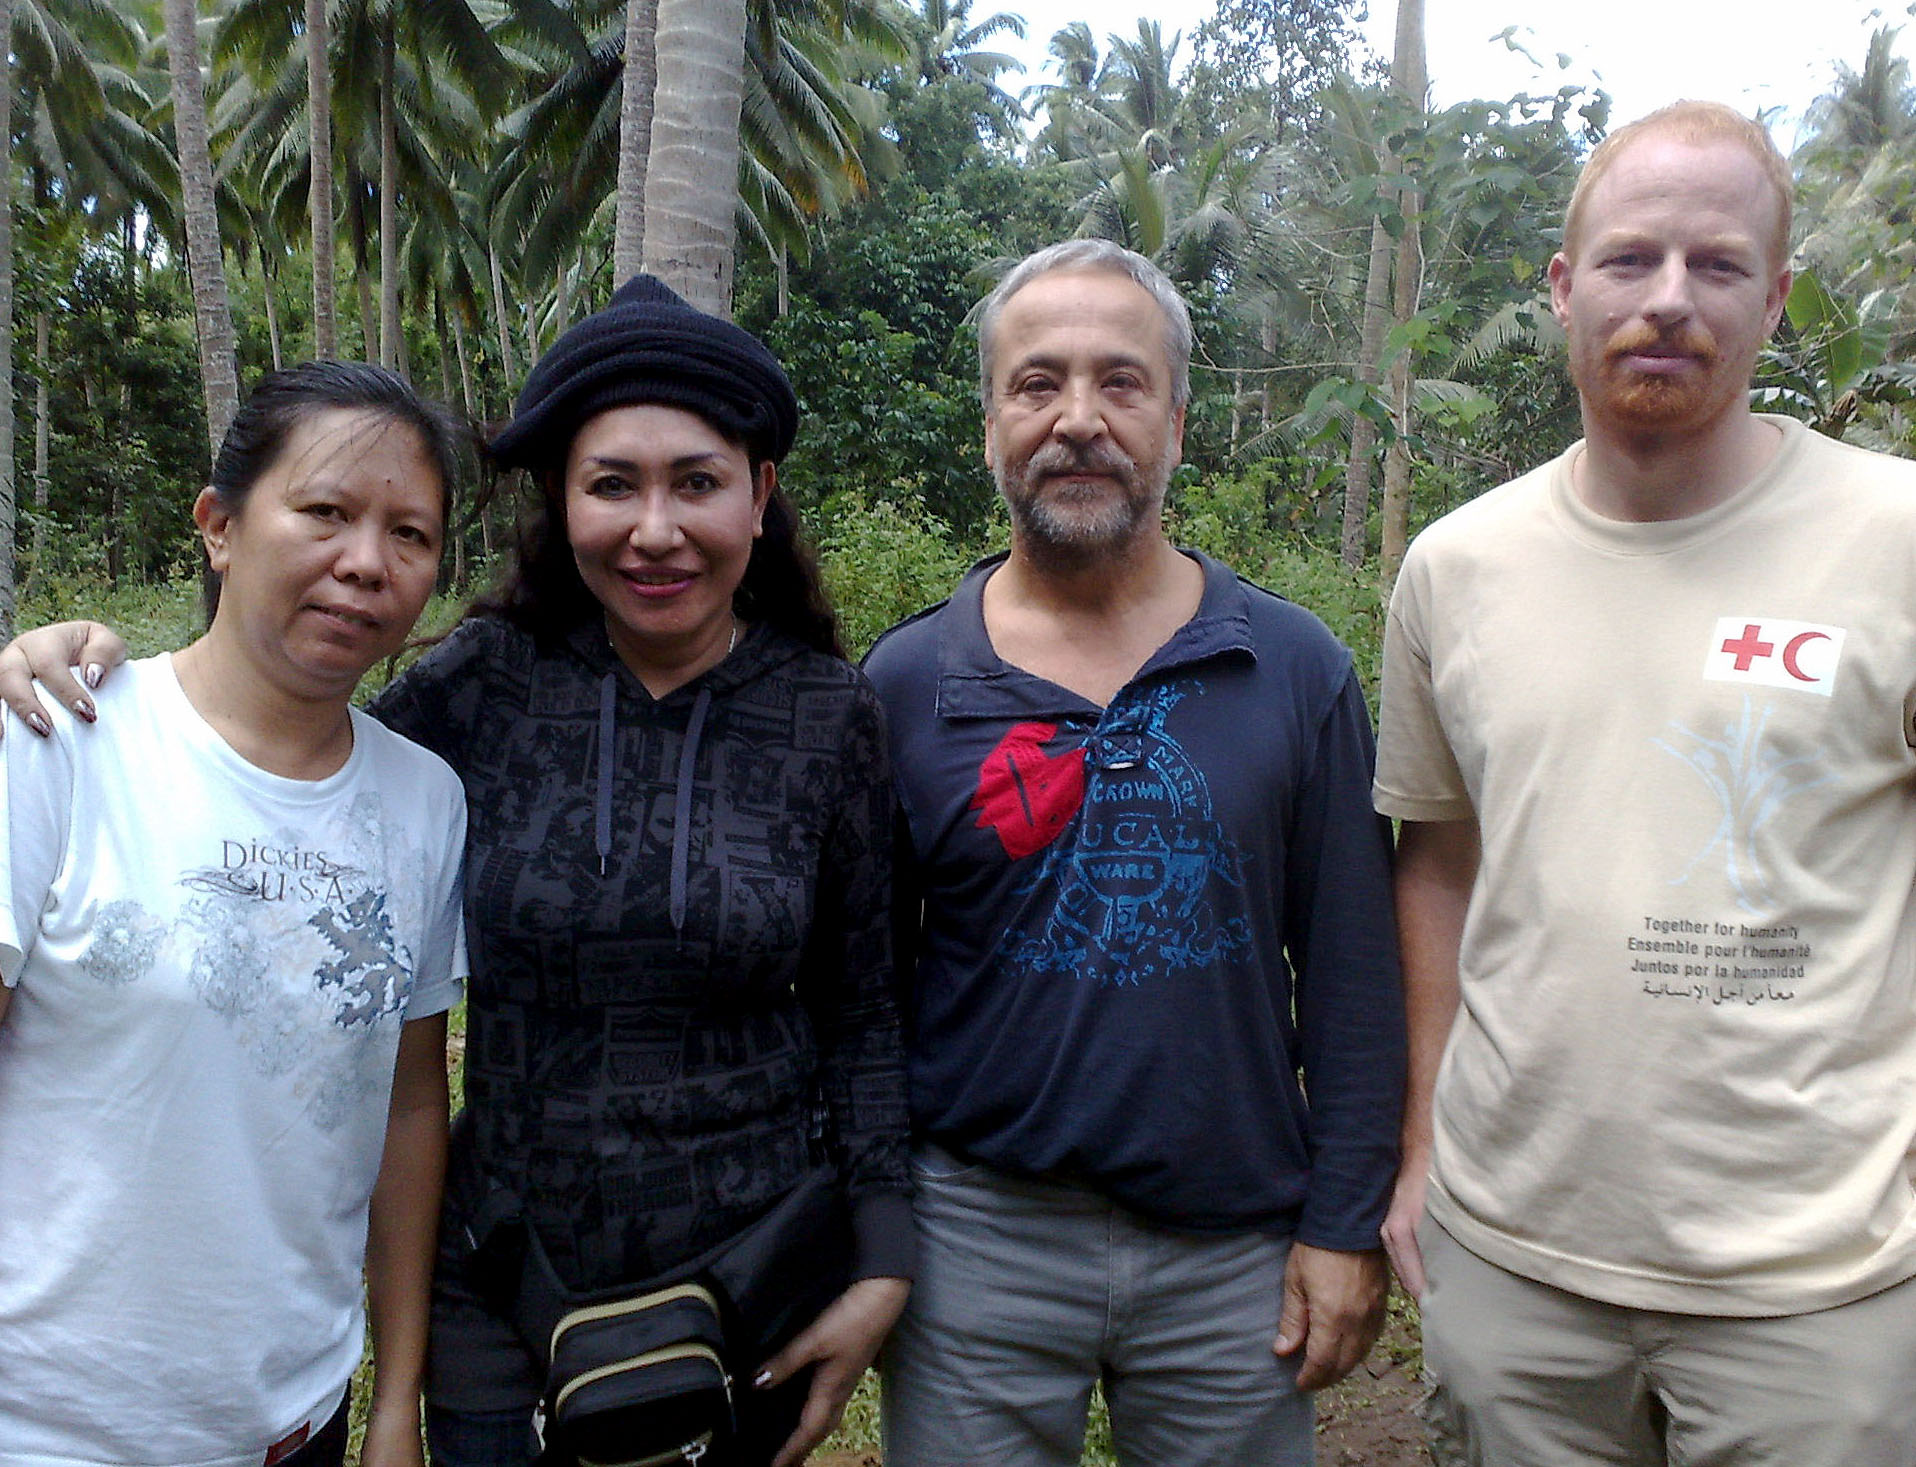 Somewhere on Jolo Island, Philippines - Vice Governor Lady Ann Sahidulla (2nd from right) is shown here in a group picture with three ICRC staff kidnapped by Abu Sayyaf militants in the southern Philippines. The picture was taken at an undisclosed area on